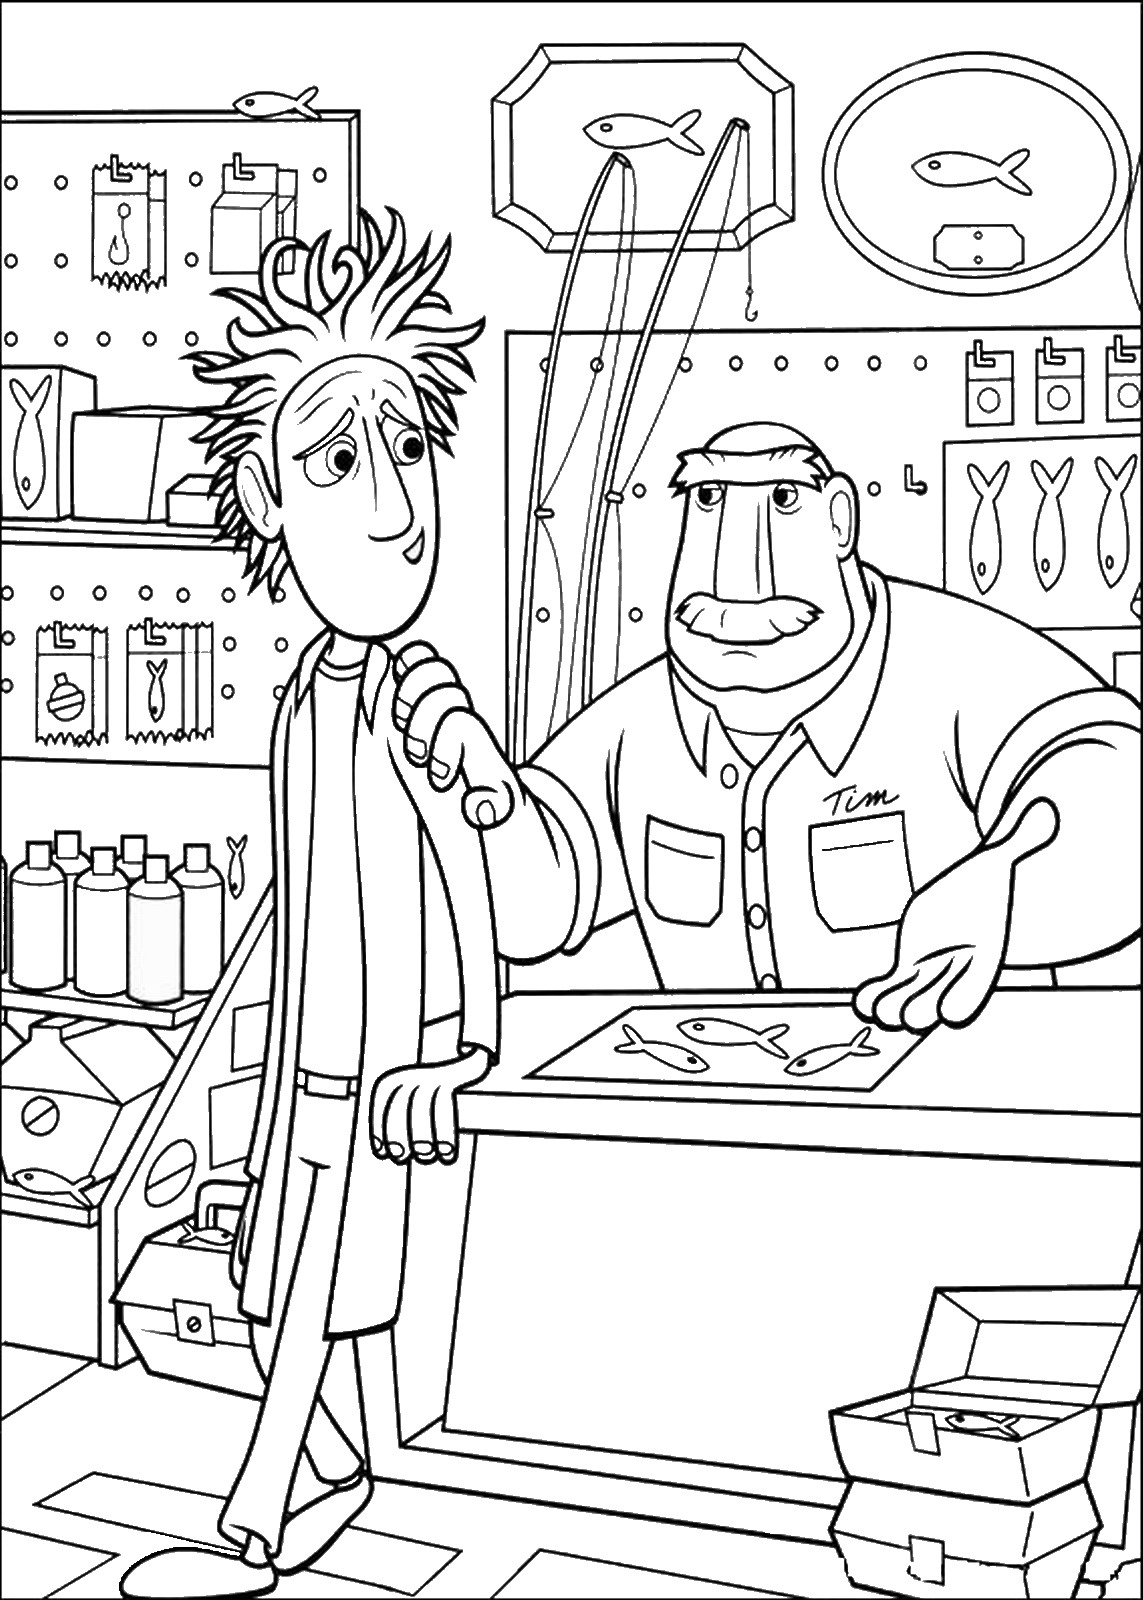 cloudy with a chance of meatballs 2 coloring pages cloudy with a chance of meatballs coloring pages cloudy of chance pages meatballs a coloring 2 with